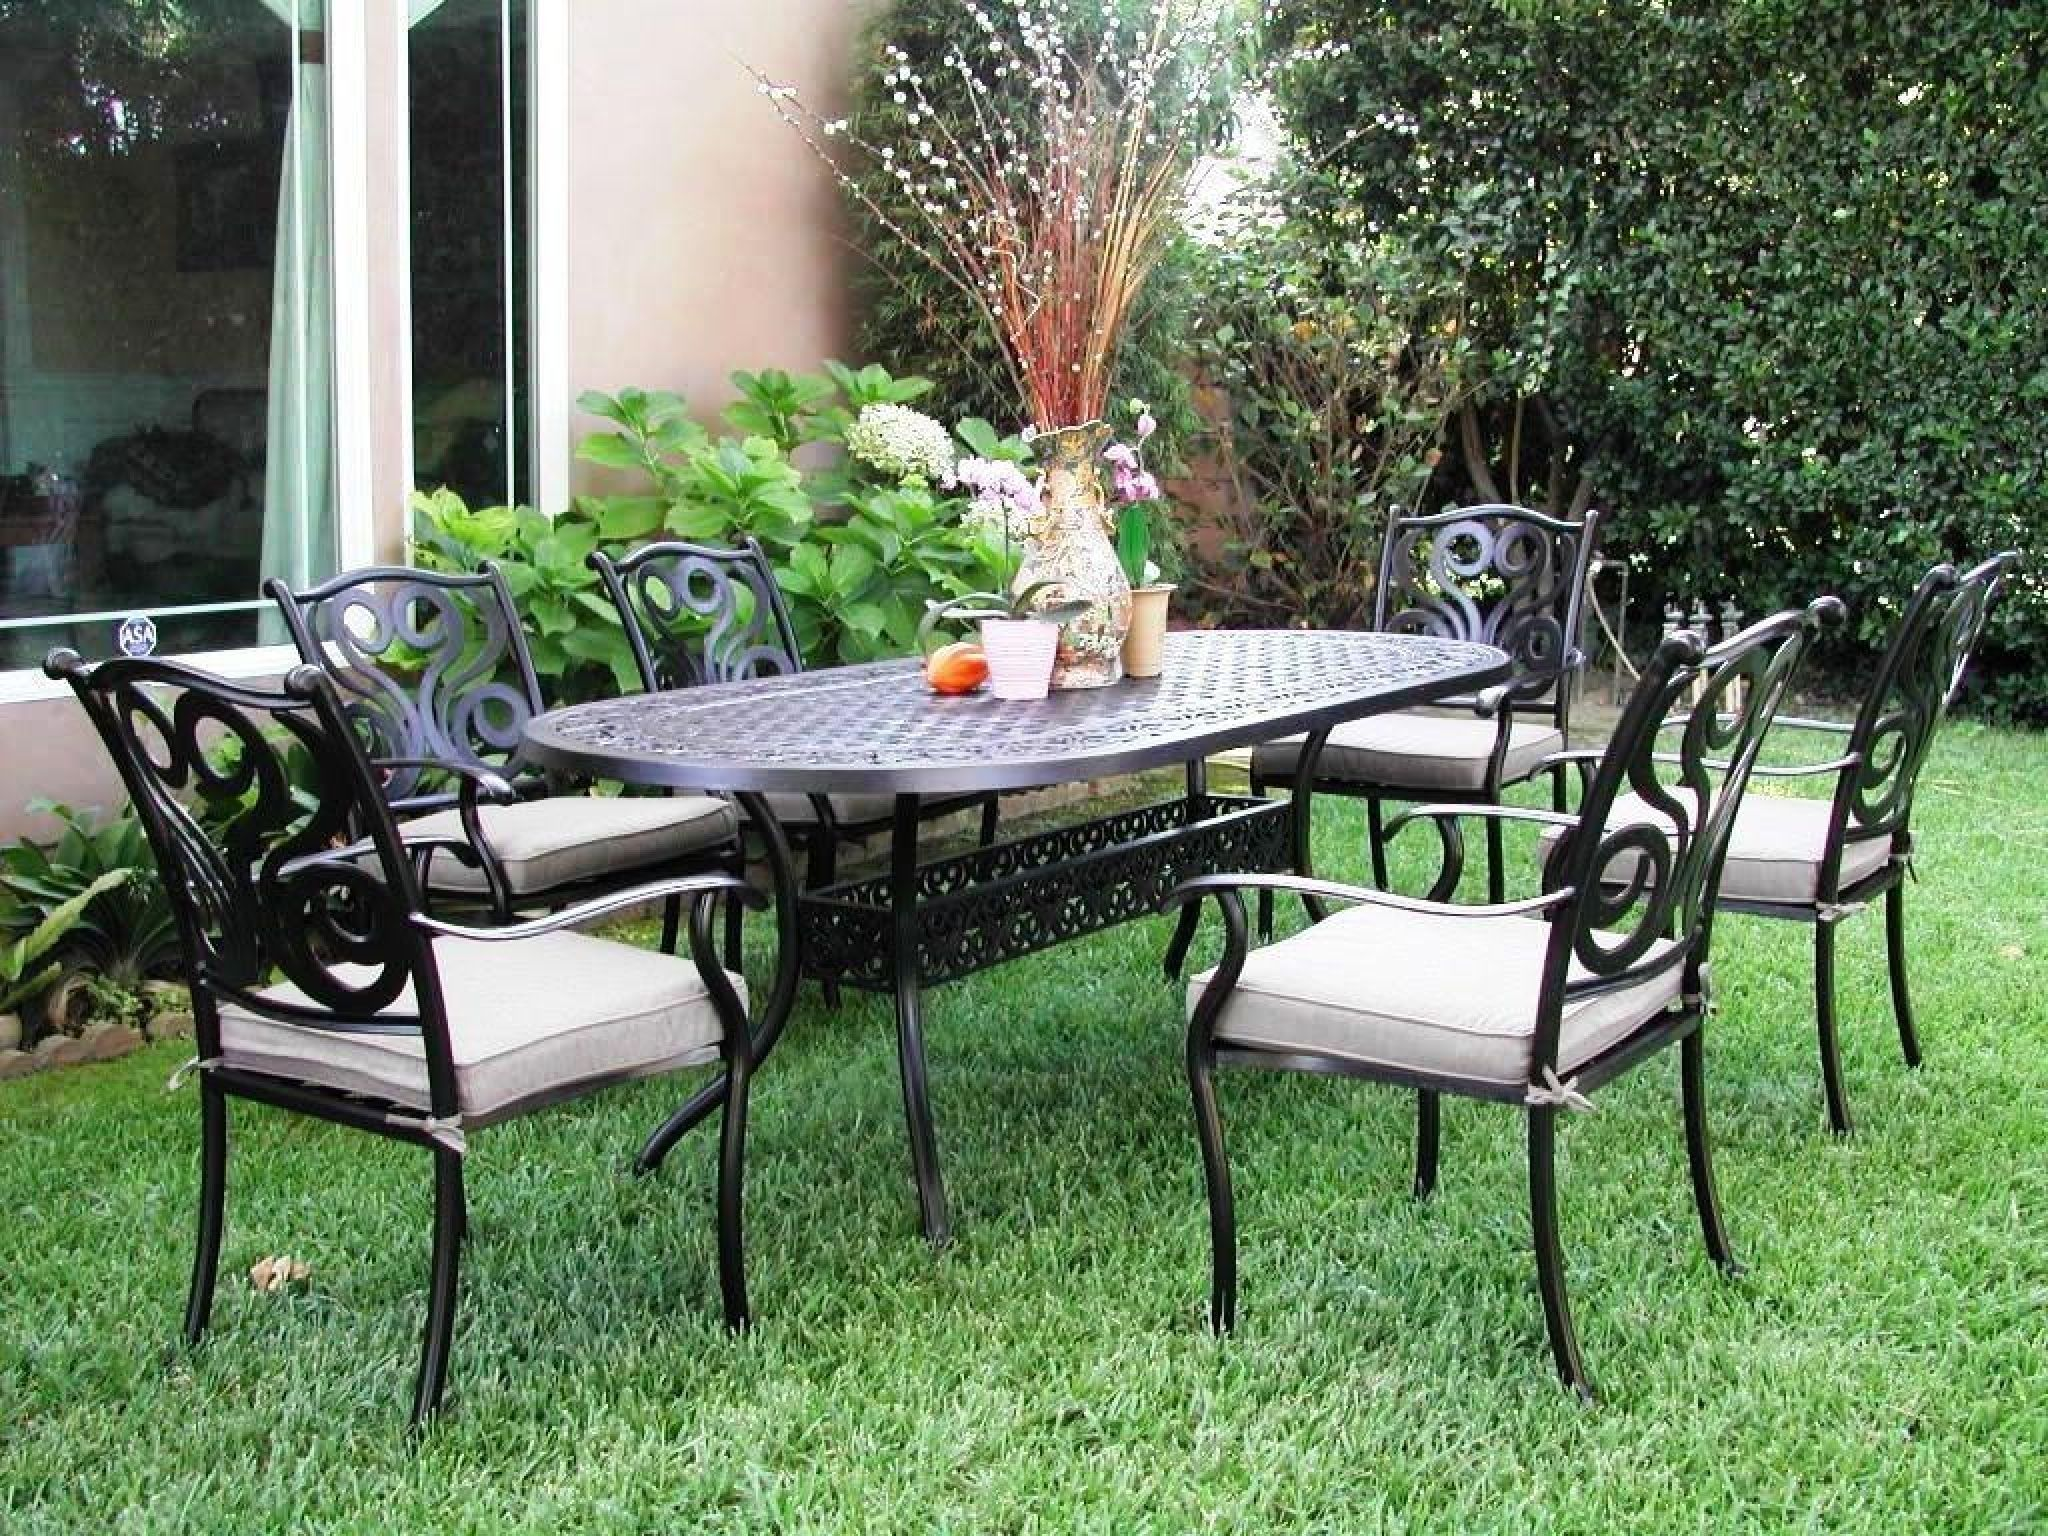 Costco Outdoor Patio Furniture Most Popular Interior Paint Colors Check More At Http Www Mtbasic Cast Aluminum Patio Furniture Costco Patio Furniture Patio